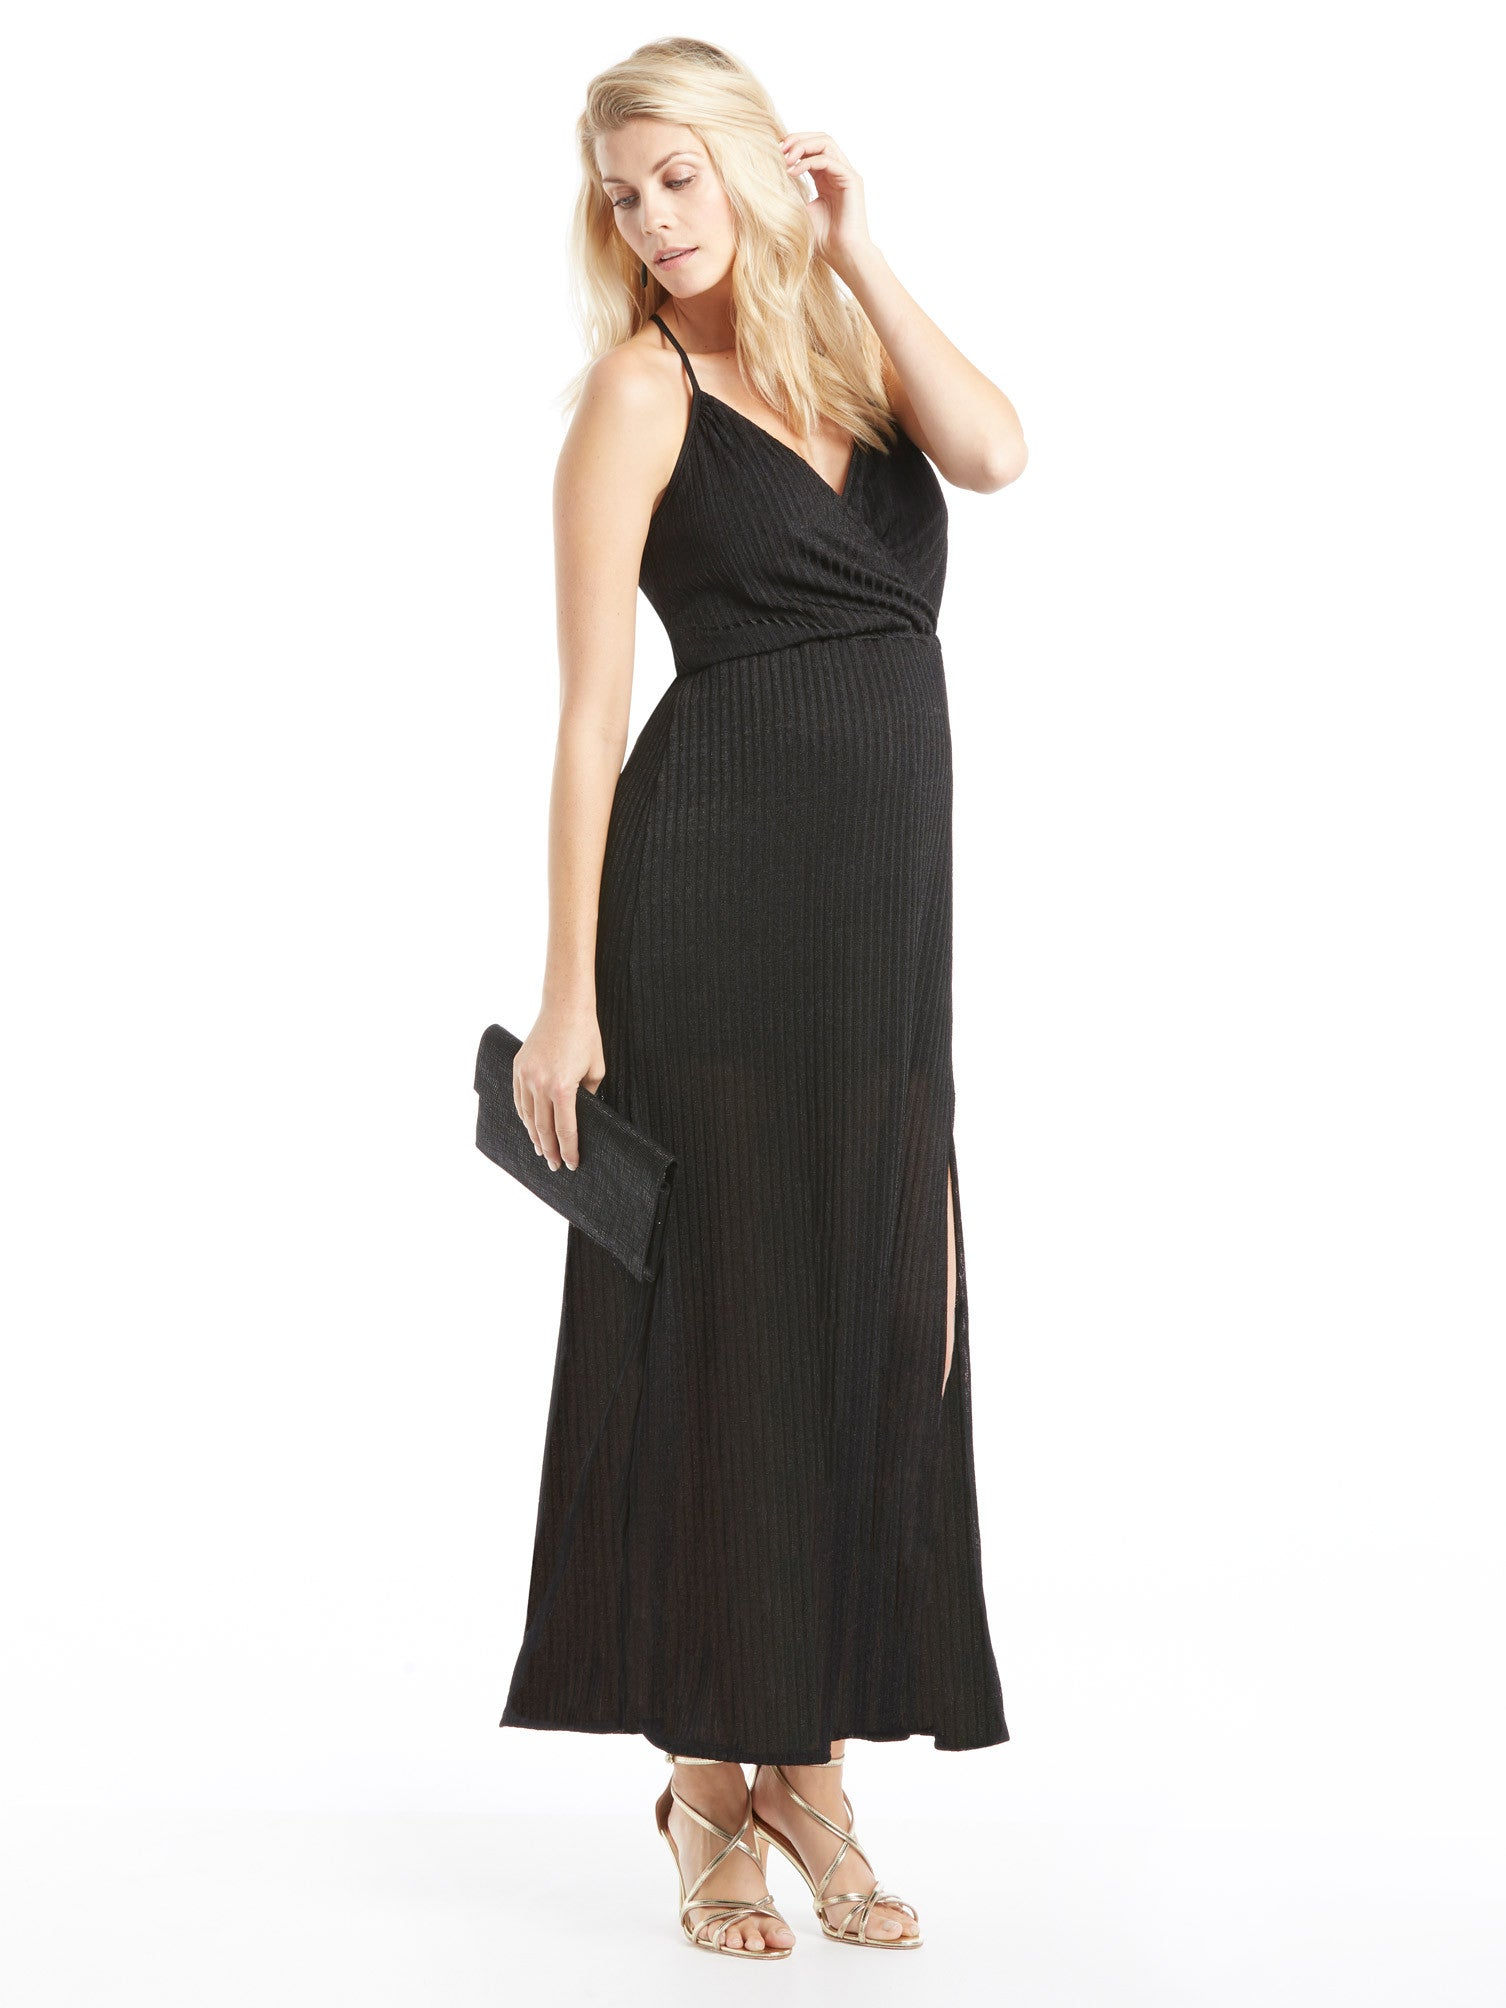 Ella Moss Crossover Maxi Dress - Black | TILDEN